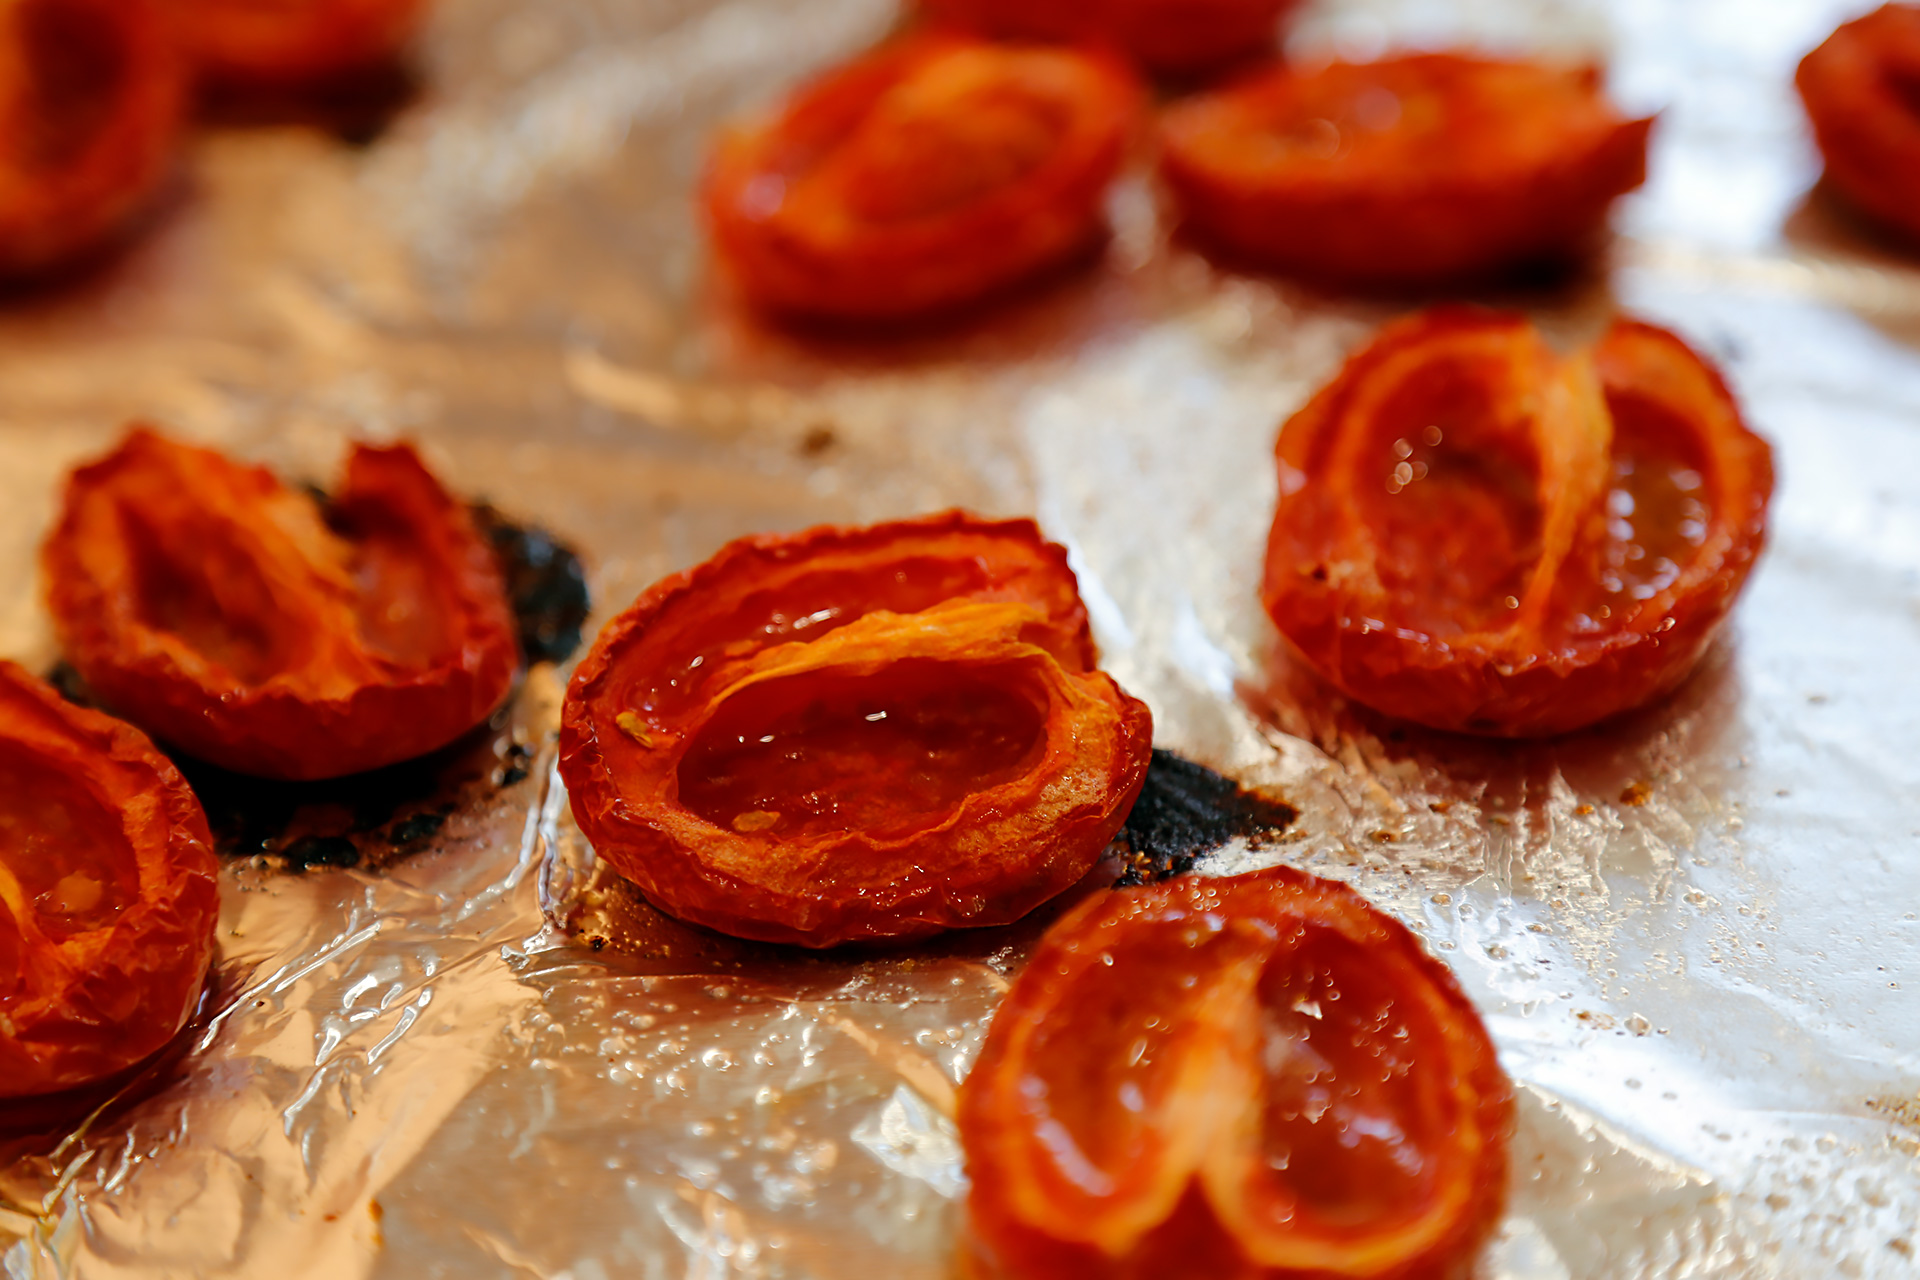 Roast the tomatoes until slightly shrunken and they begin to caramelize. Set aside to cool.